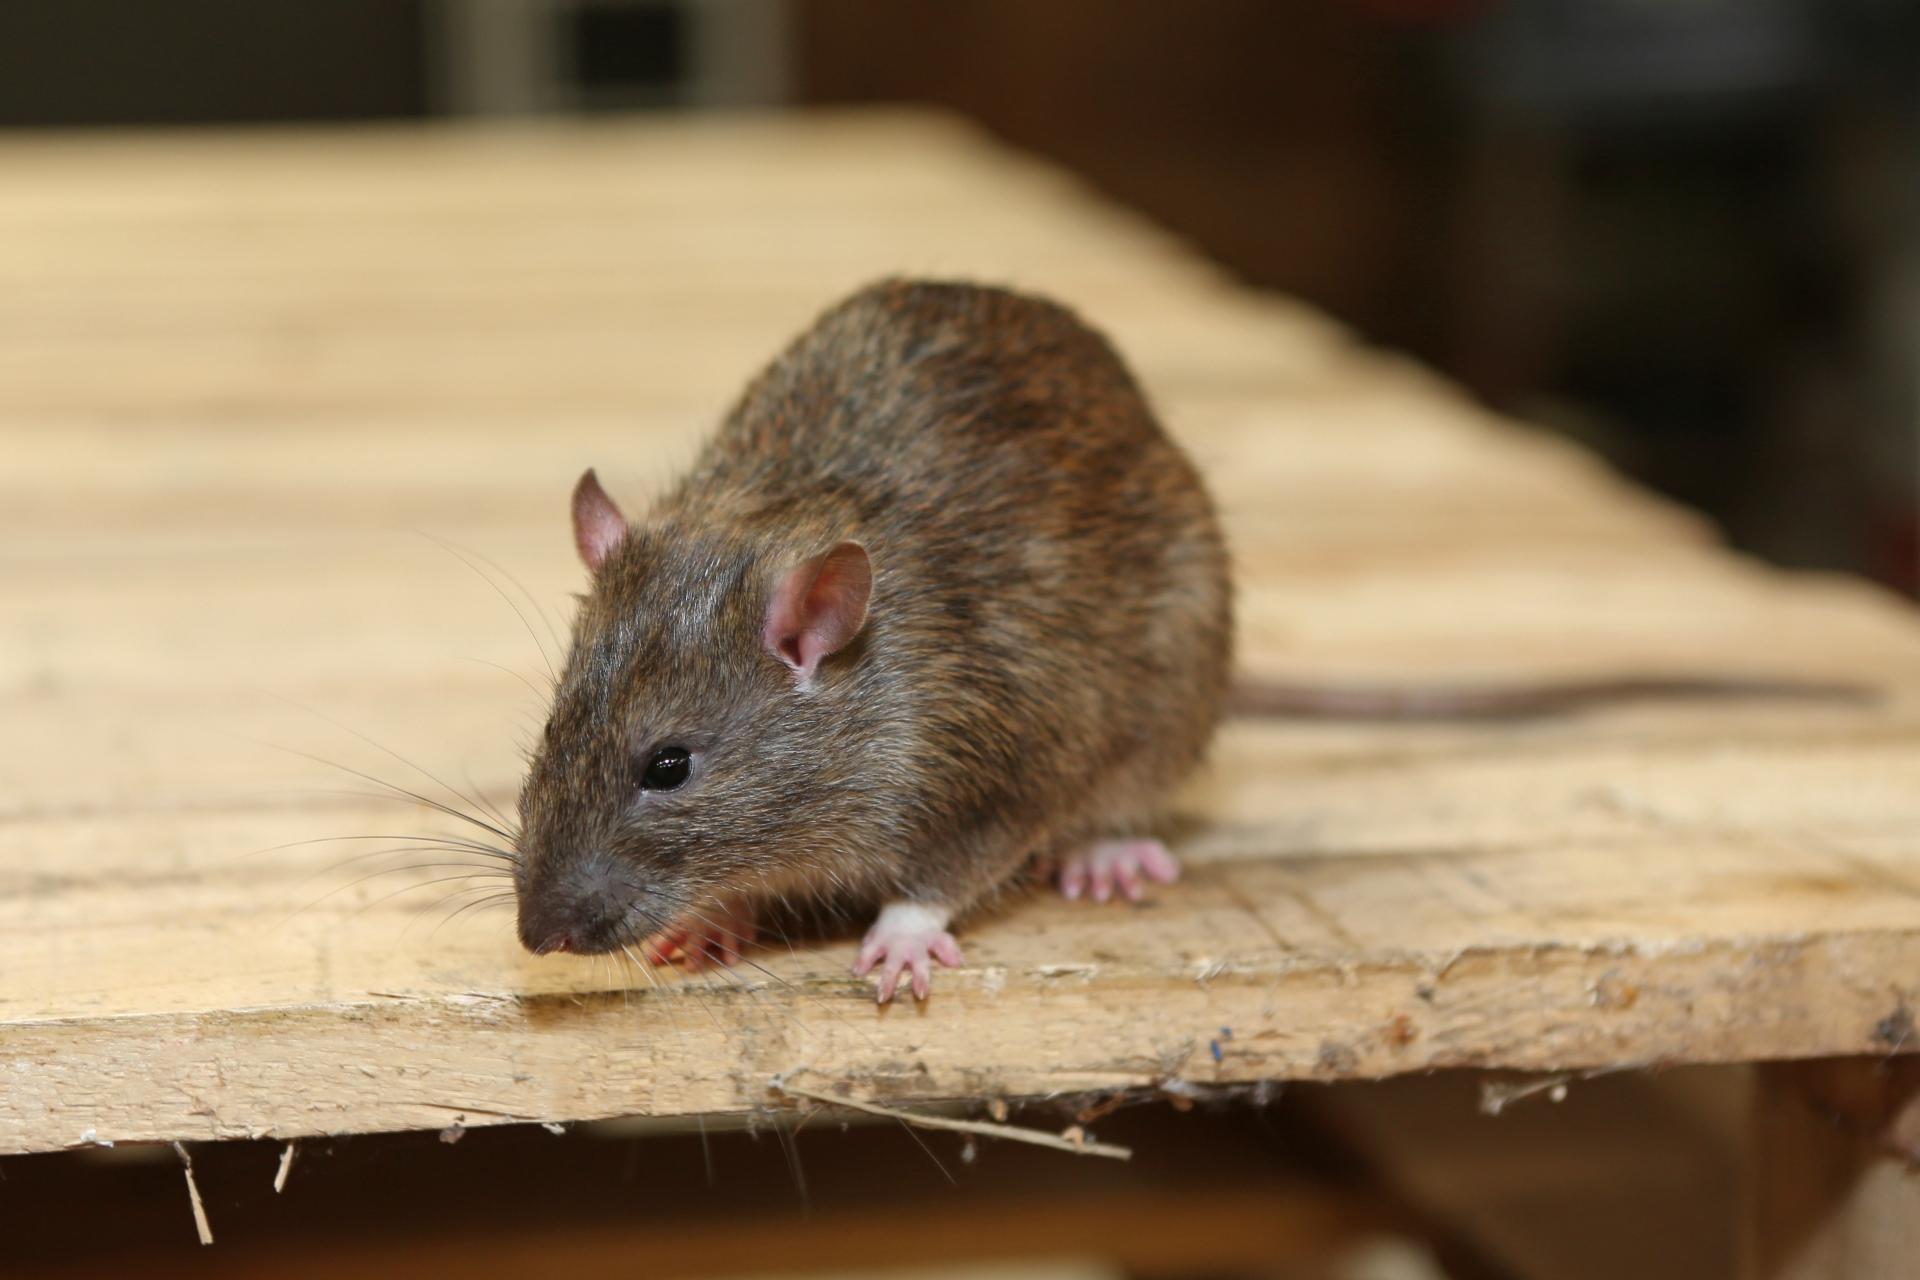 Rat Infestation, Pest Control in Highbury, N5. Call Now 020 8166 9746